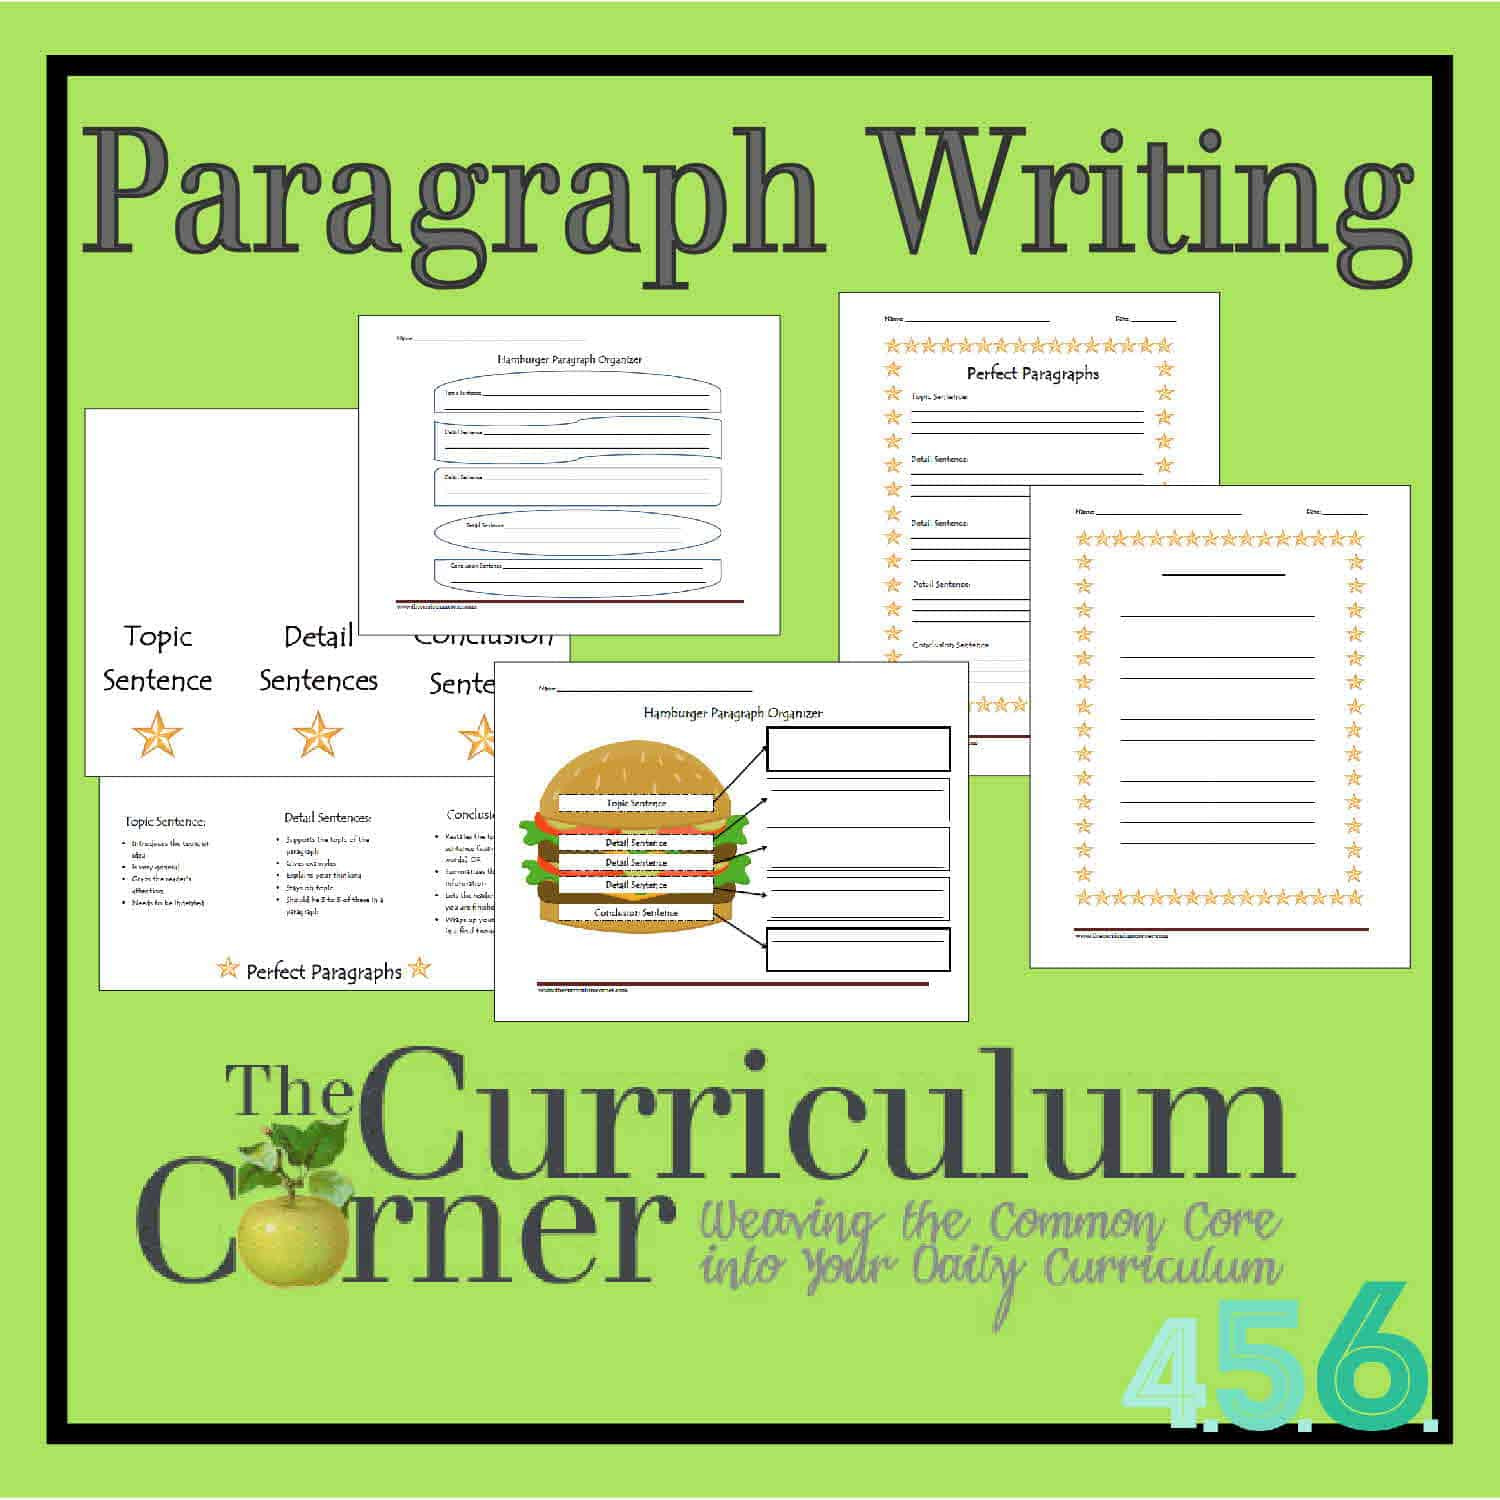 Writing A Paragraph Worksheet Paragraph Writing the Curriculum Corner 4 5 6